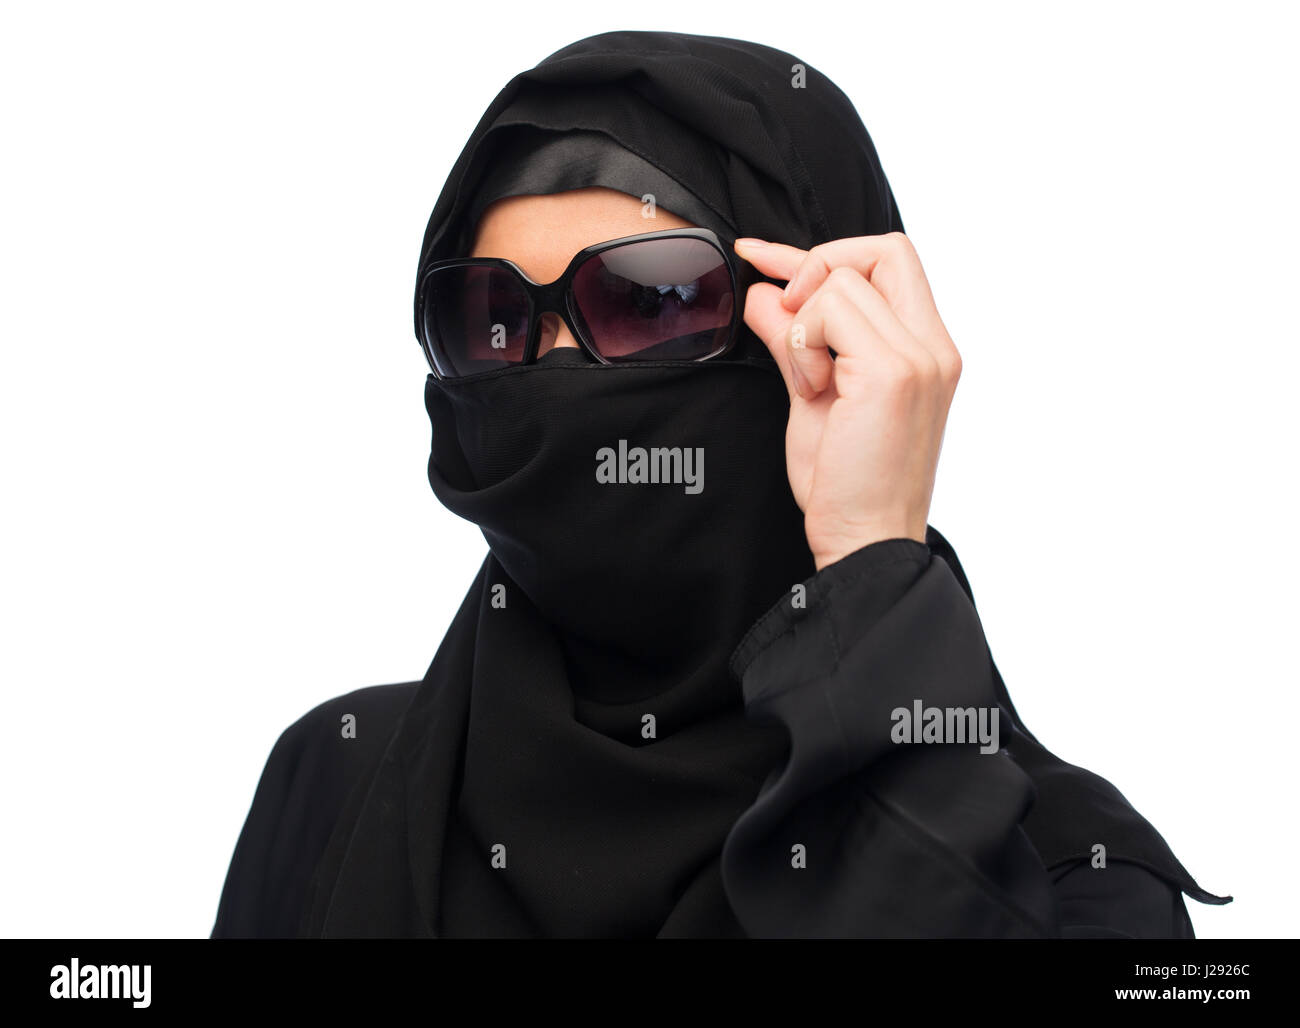 muslim woman in hijab and sunglasses over white - Stock Image